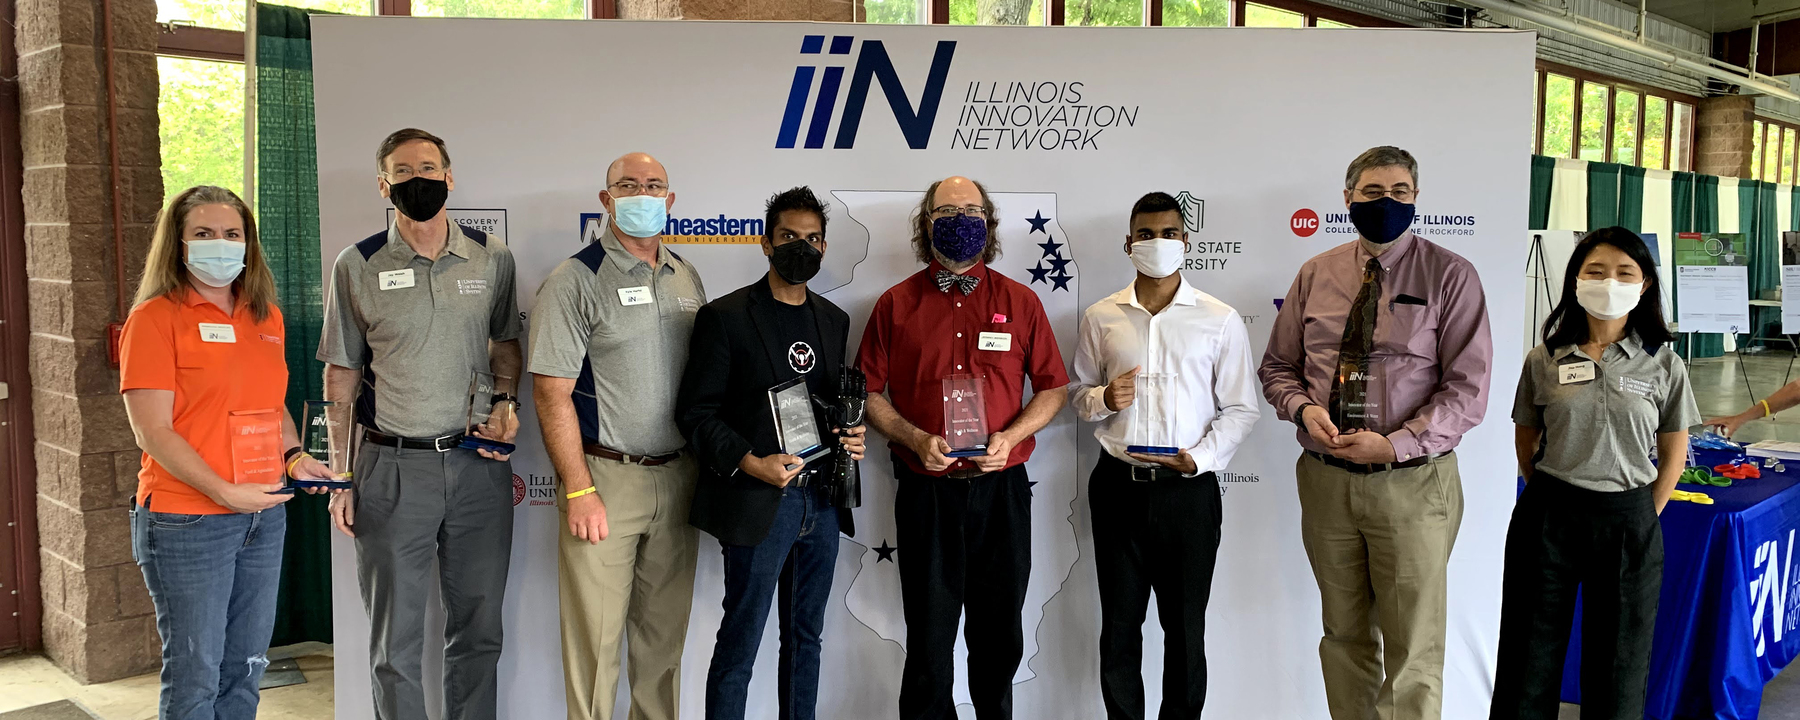 group of masked people holding awards in front of banner